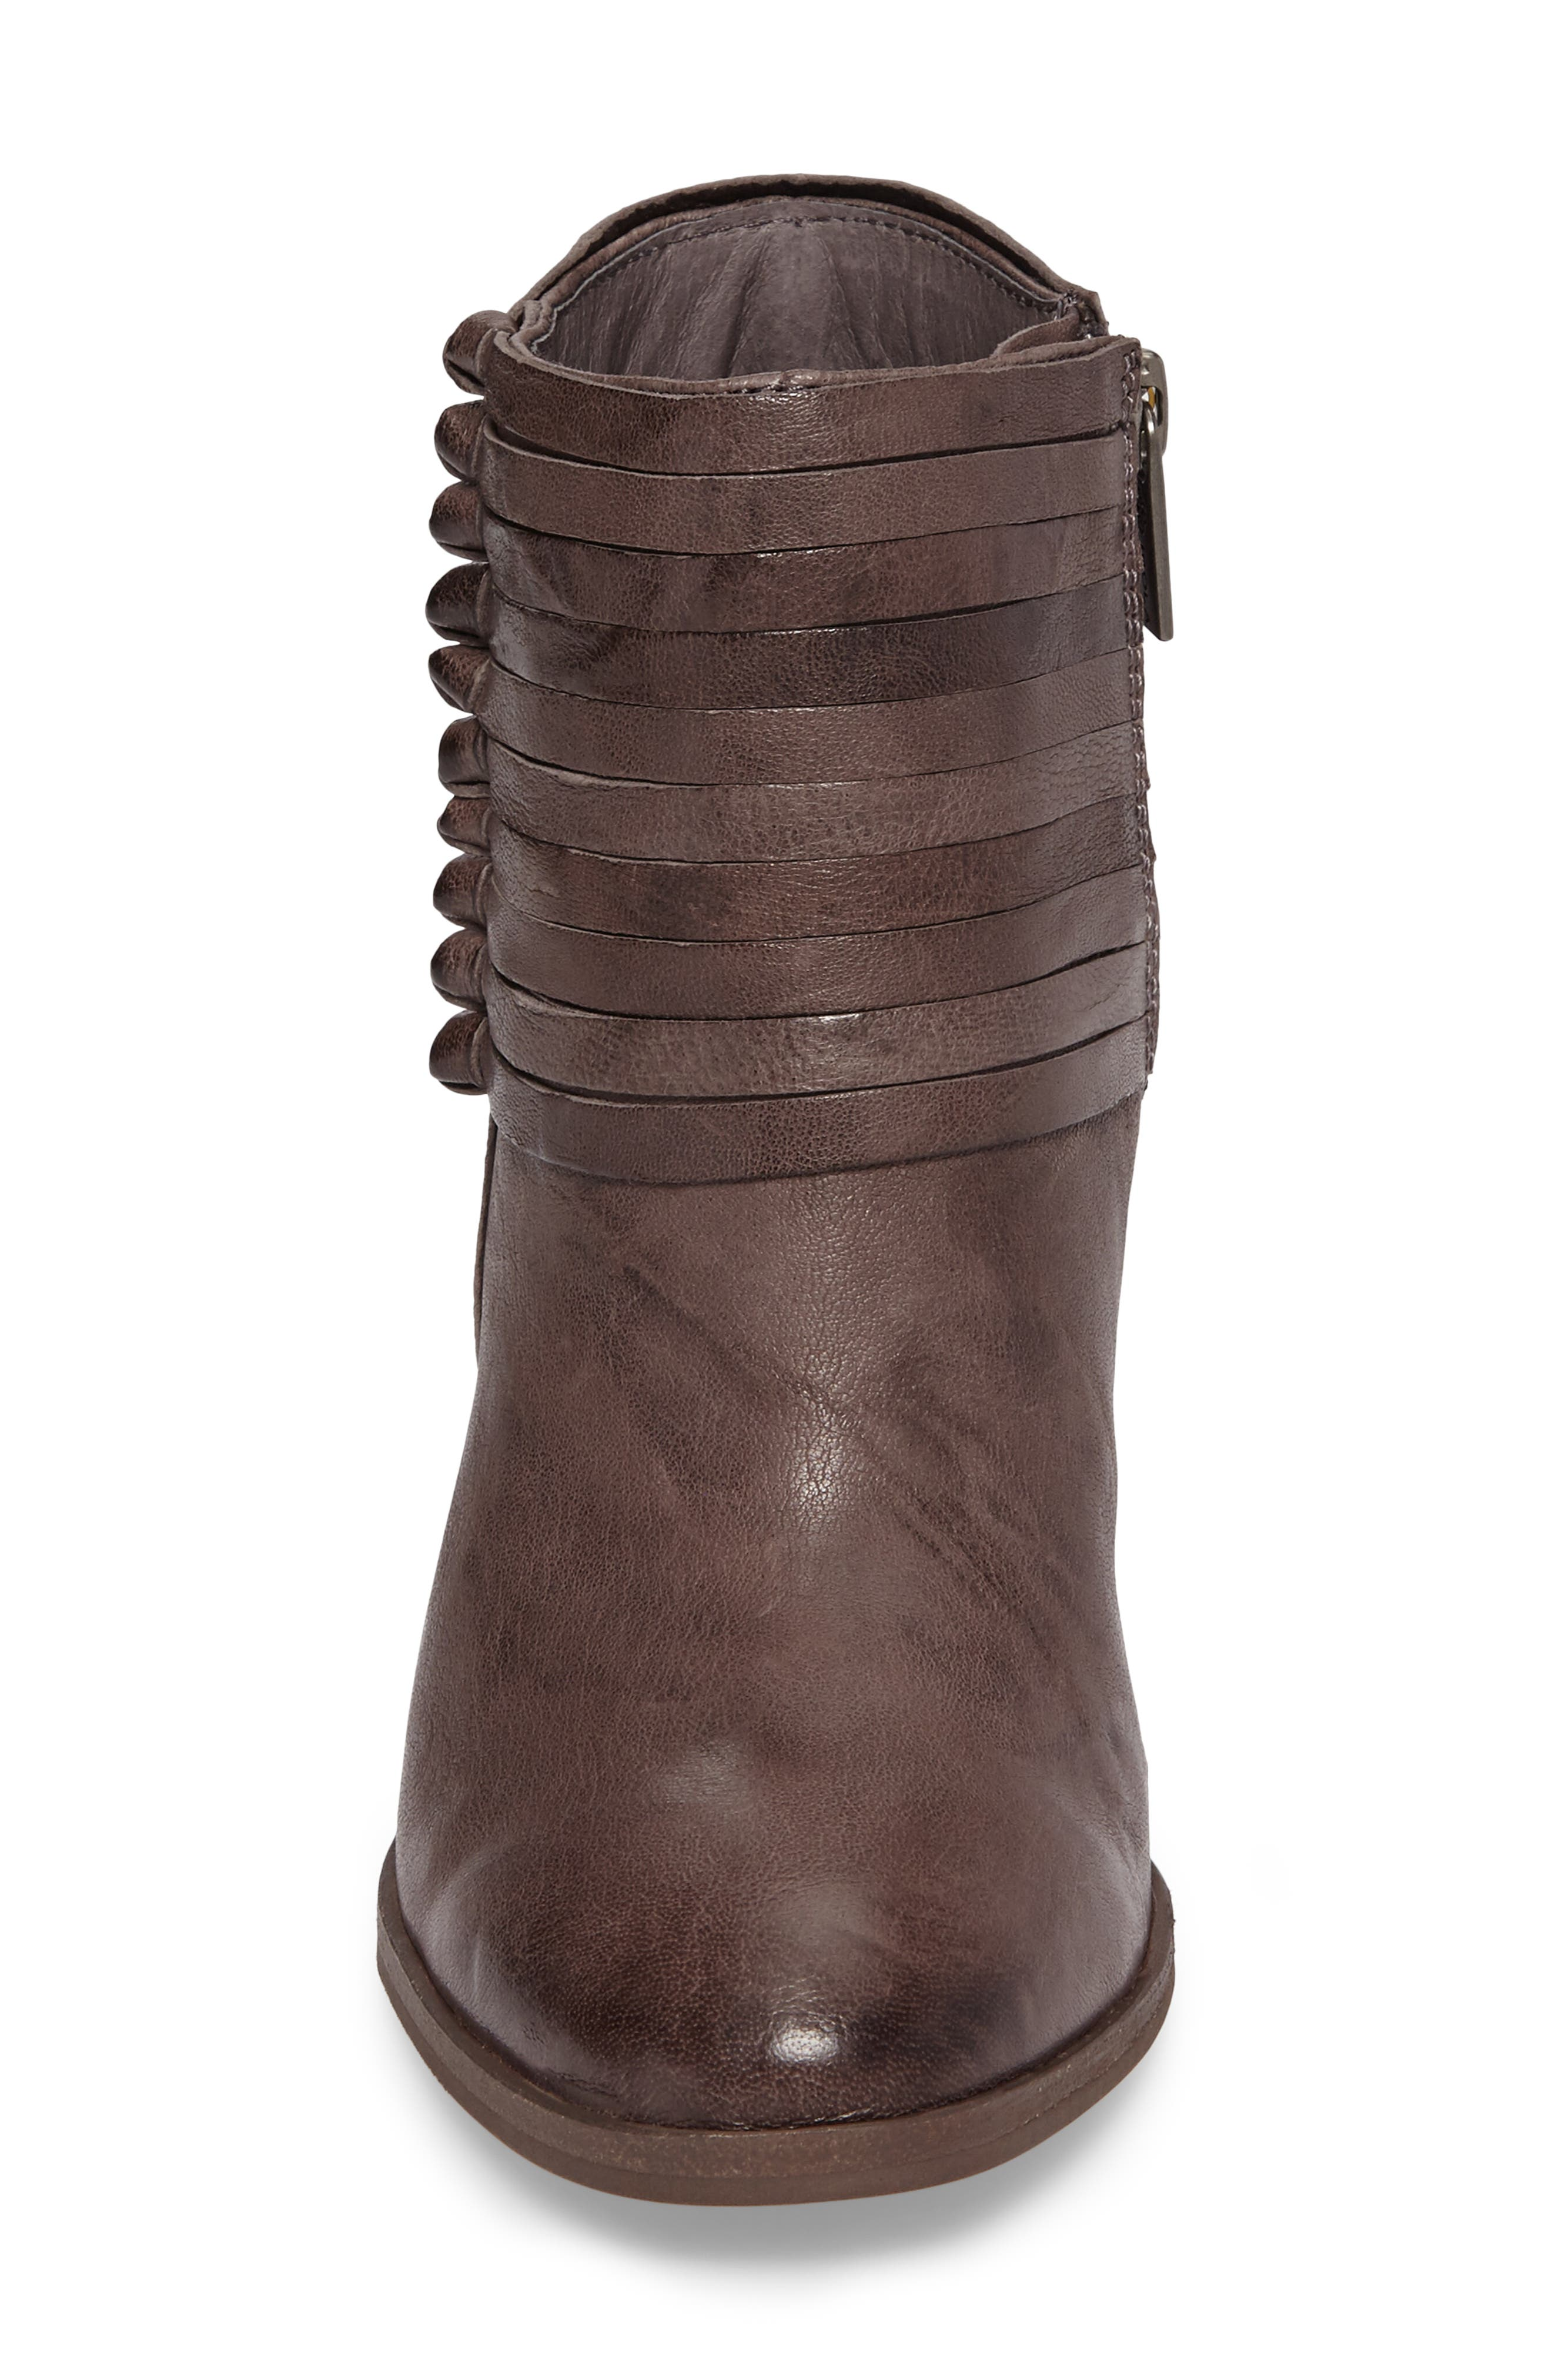 Lander Strappy Bootie,                             Alternate thumbnail 4, color,                             Cemento Grey Leather